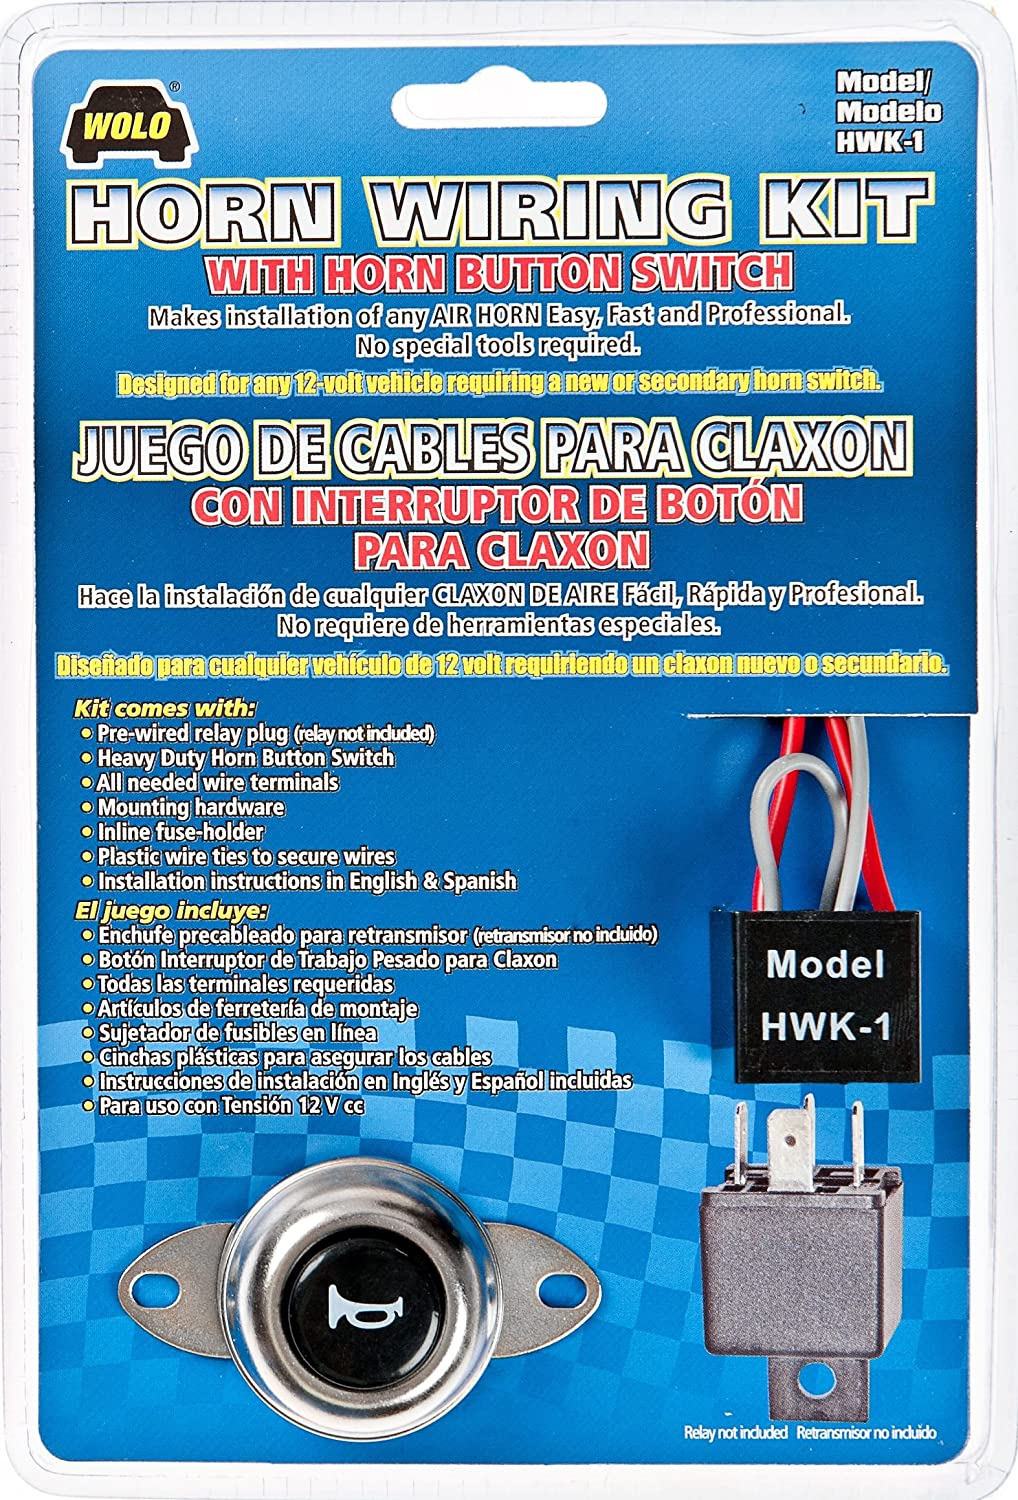 Wolo Hwk 1 Air Horn Wiring Kit With Button Switch Relay Motorcycle Automotive